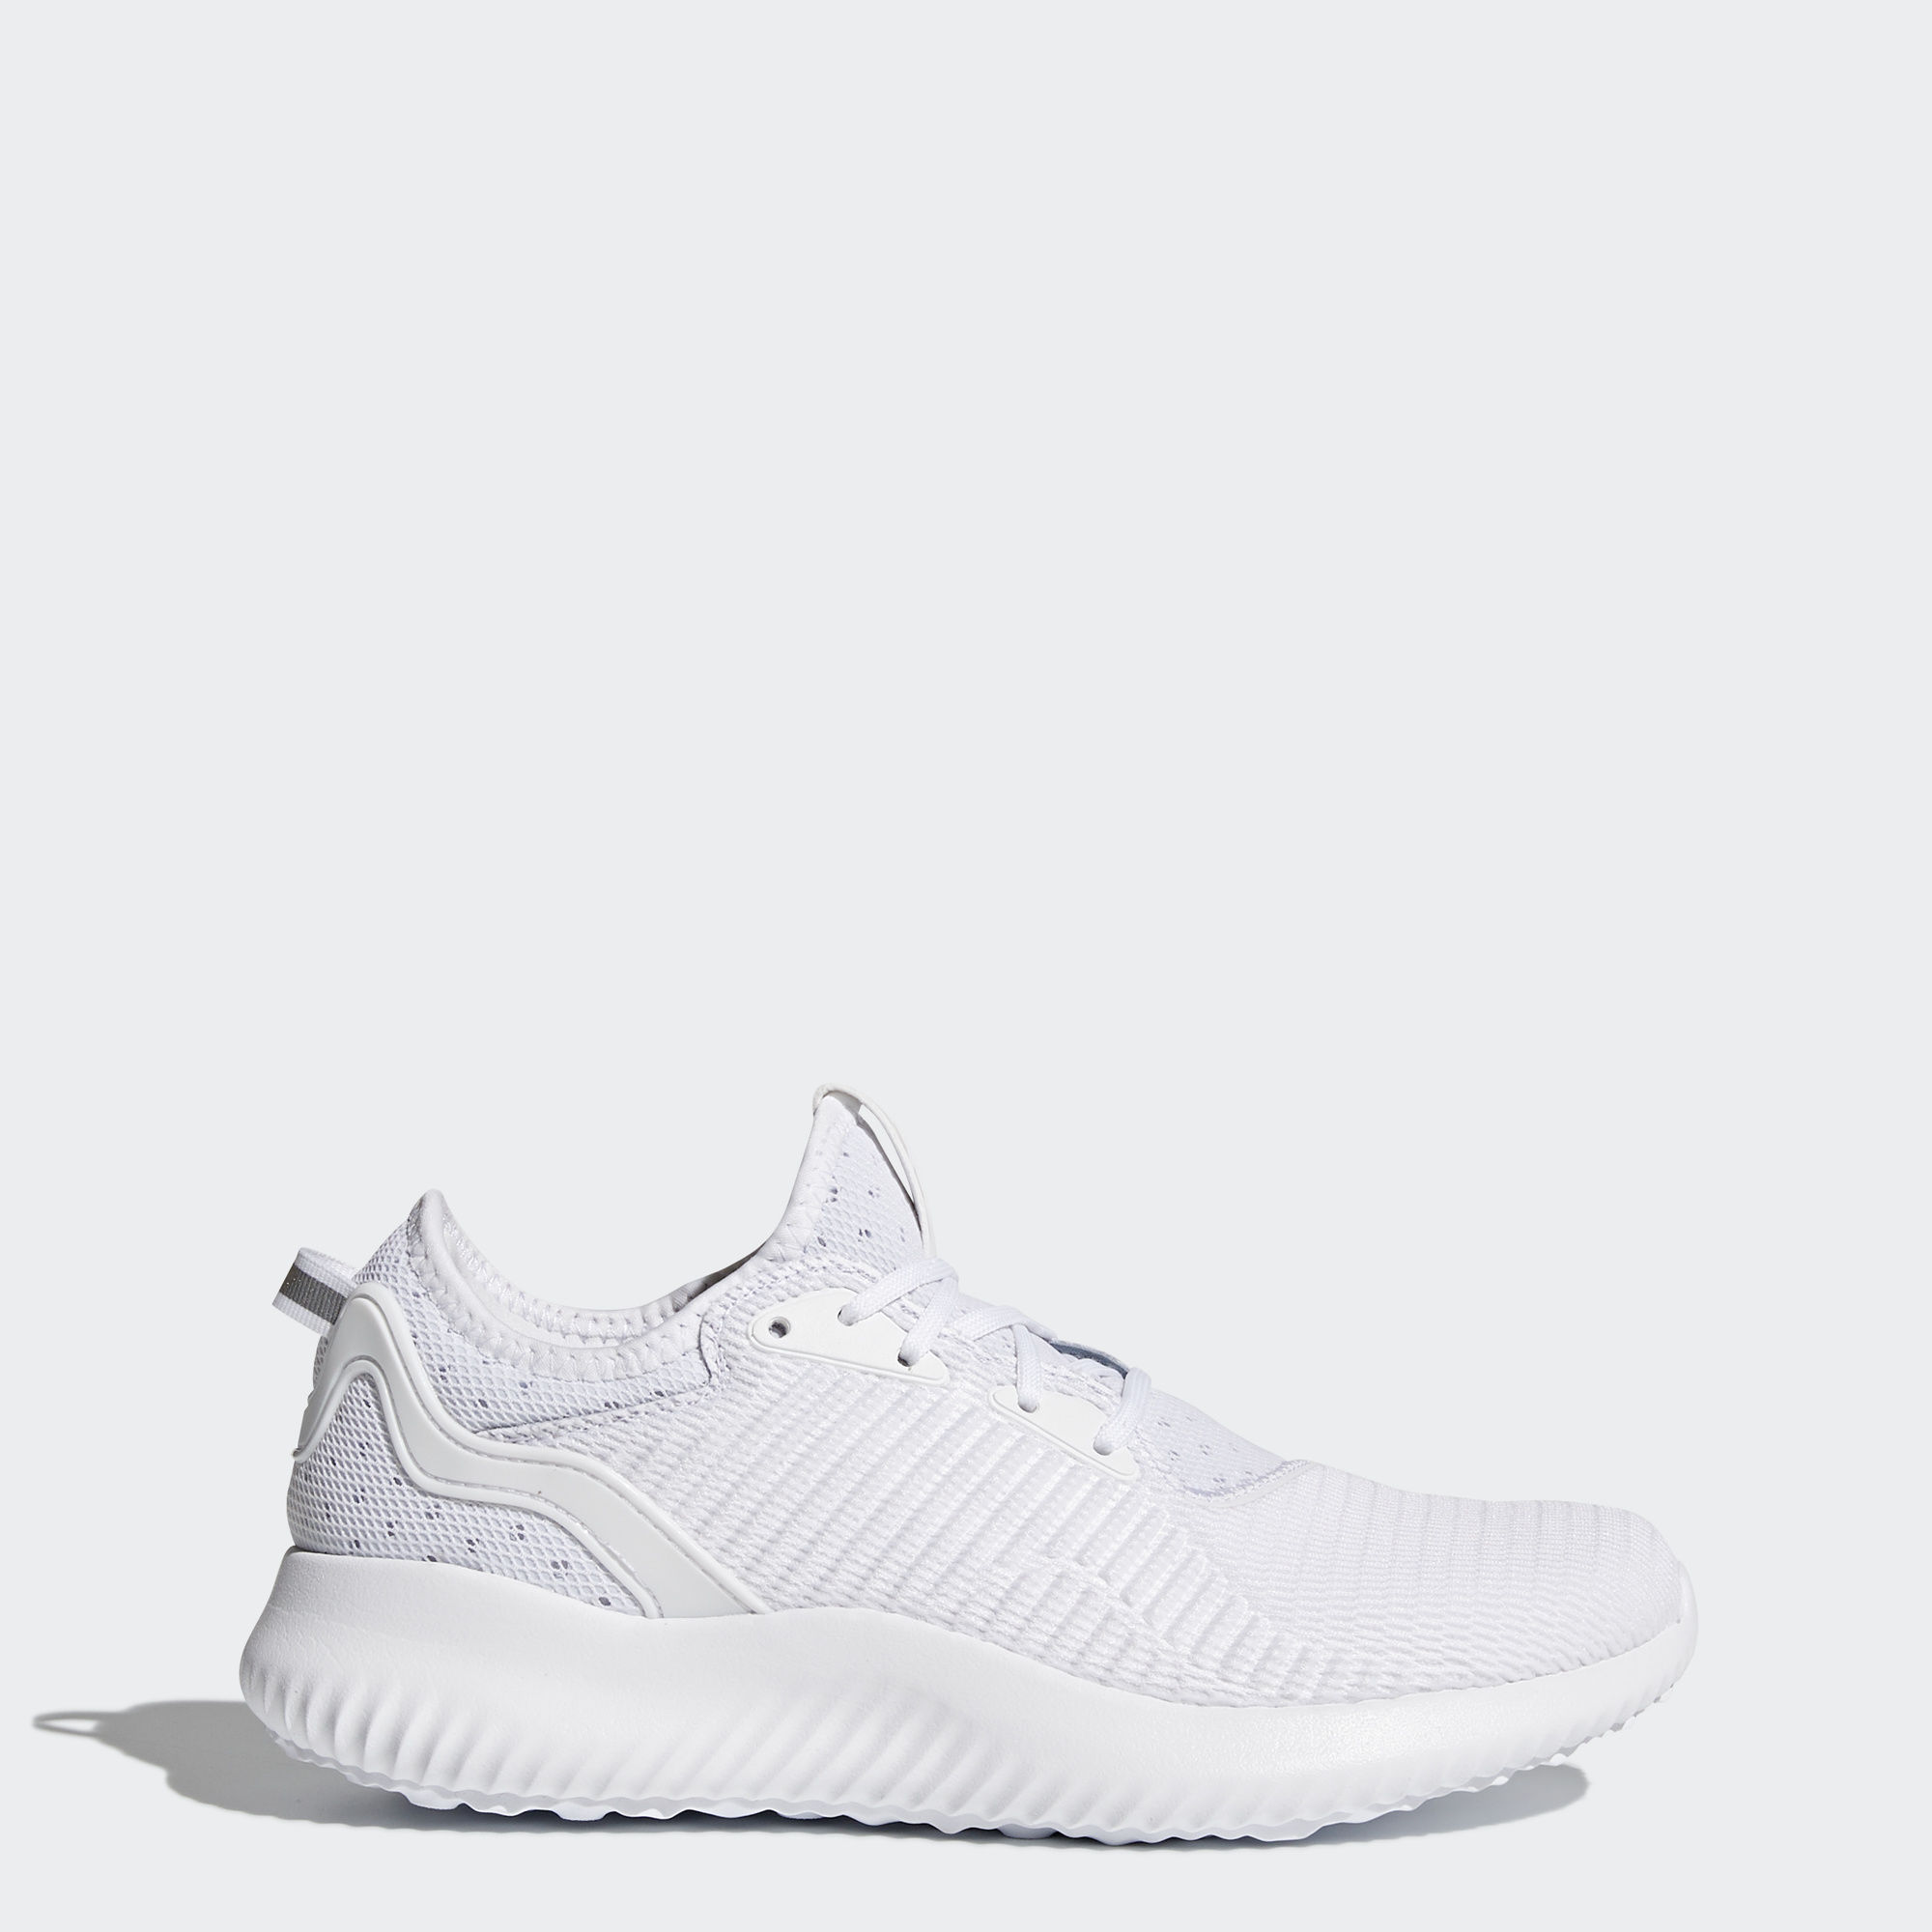 adidas alphabounce white